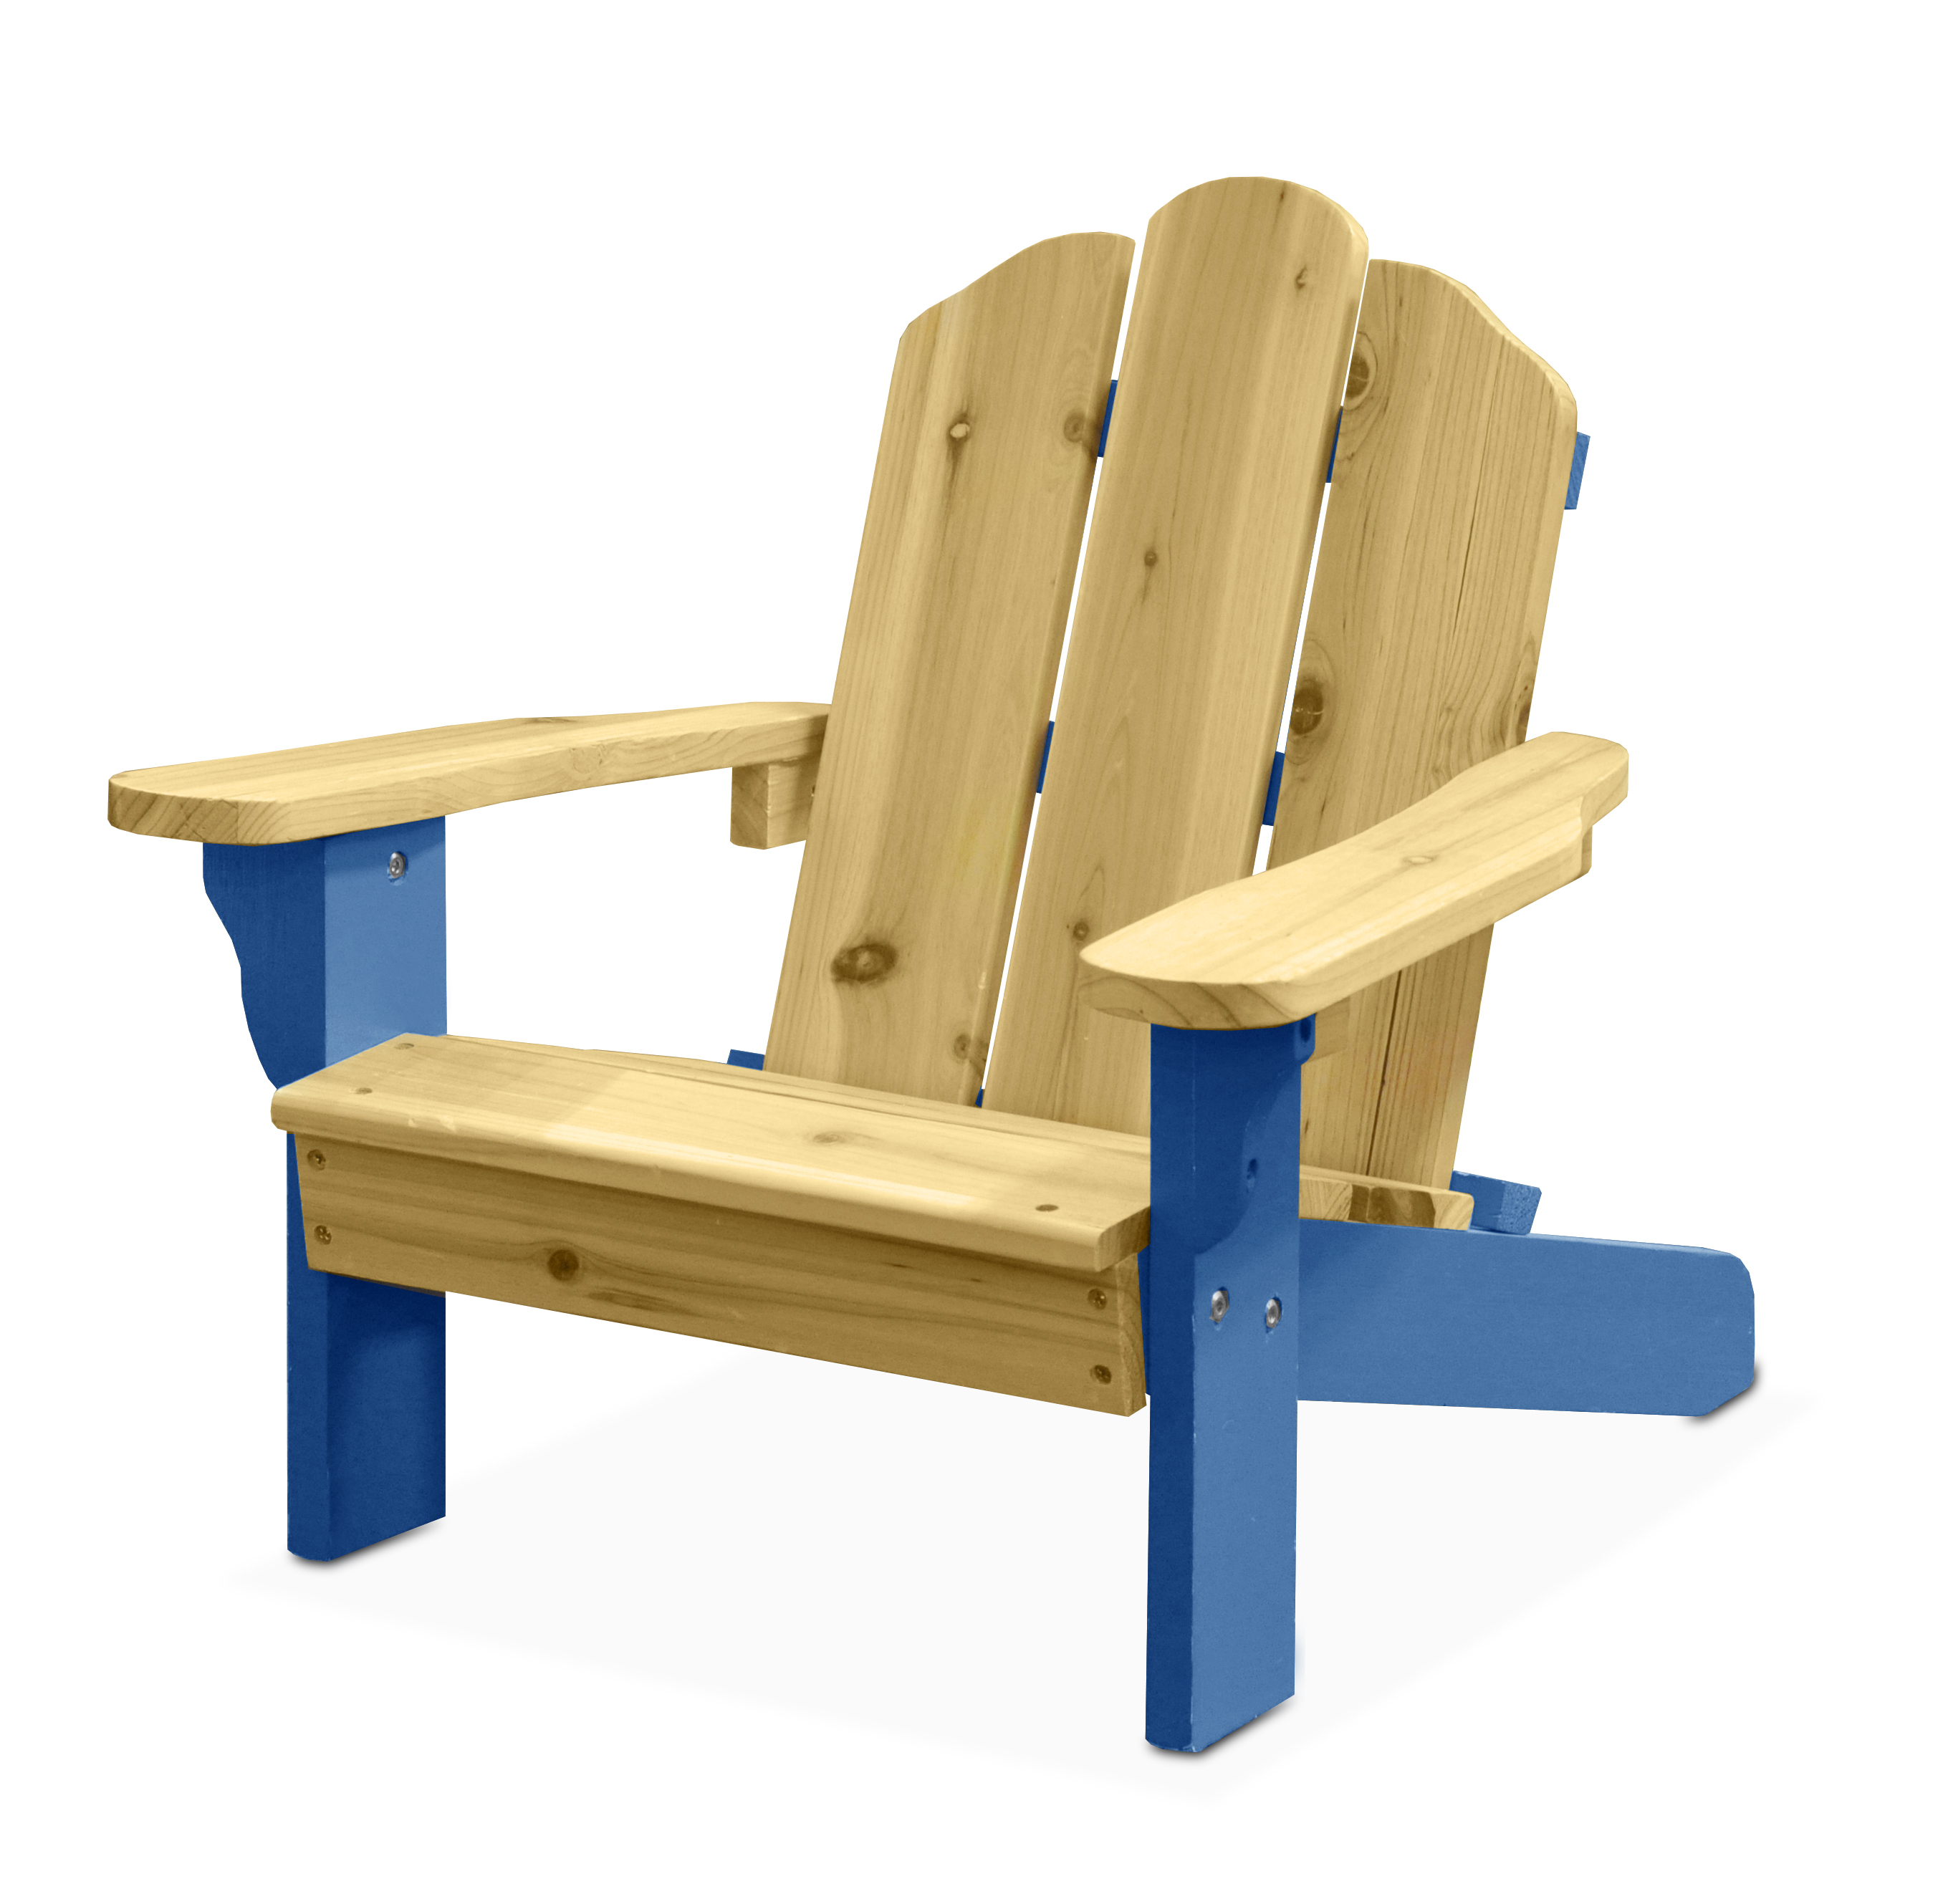 Urban Shop Kids Adirondack Chair, Available in Multiple Colors